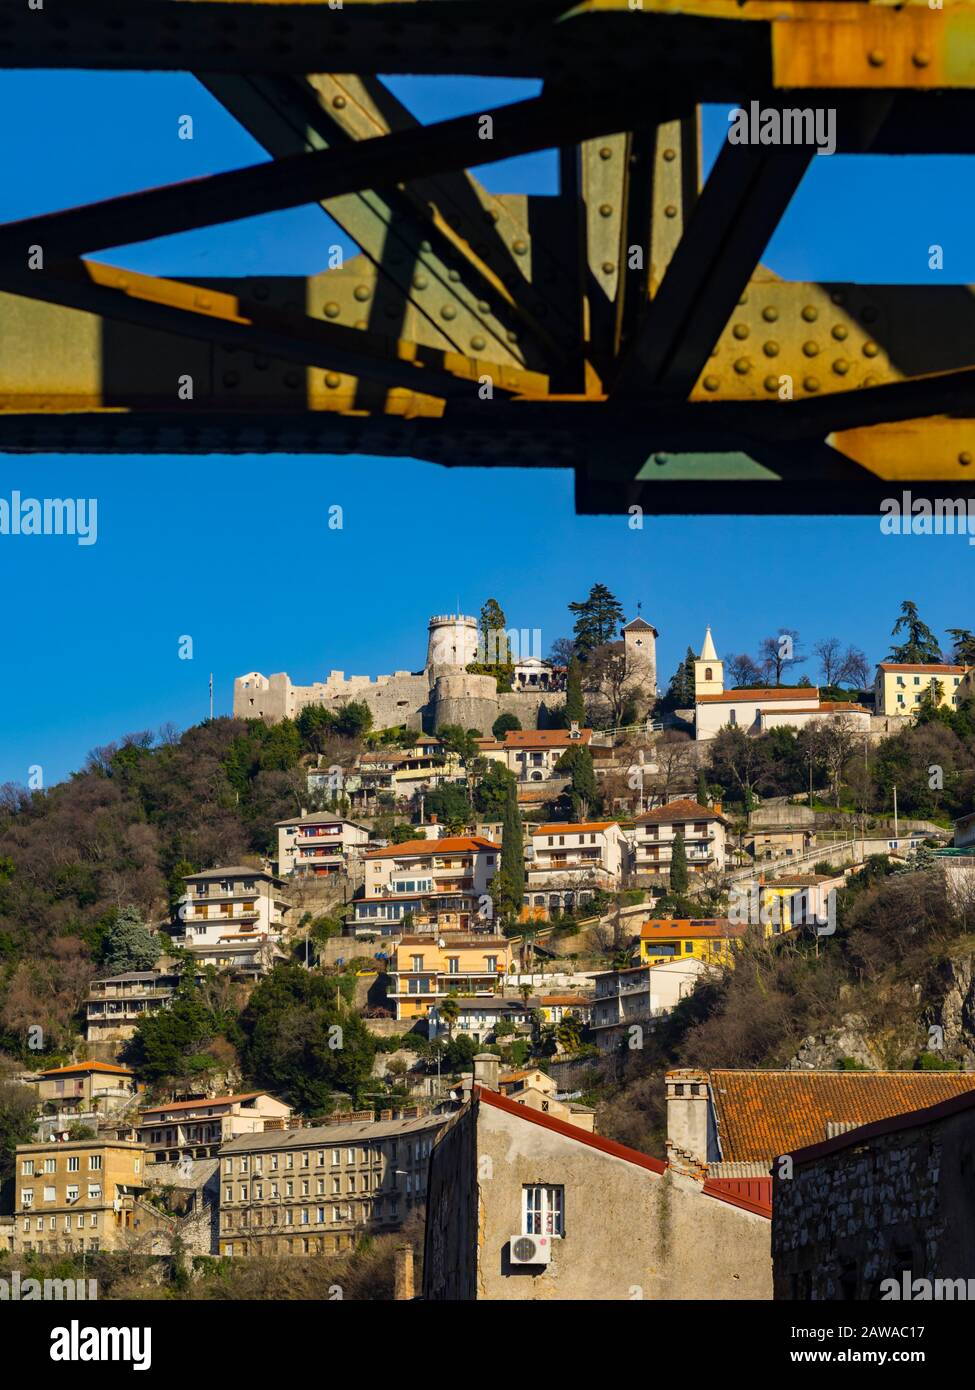 Trsat under metal railway bridge Rijeka Croatia Europe Stock Photo